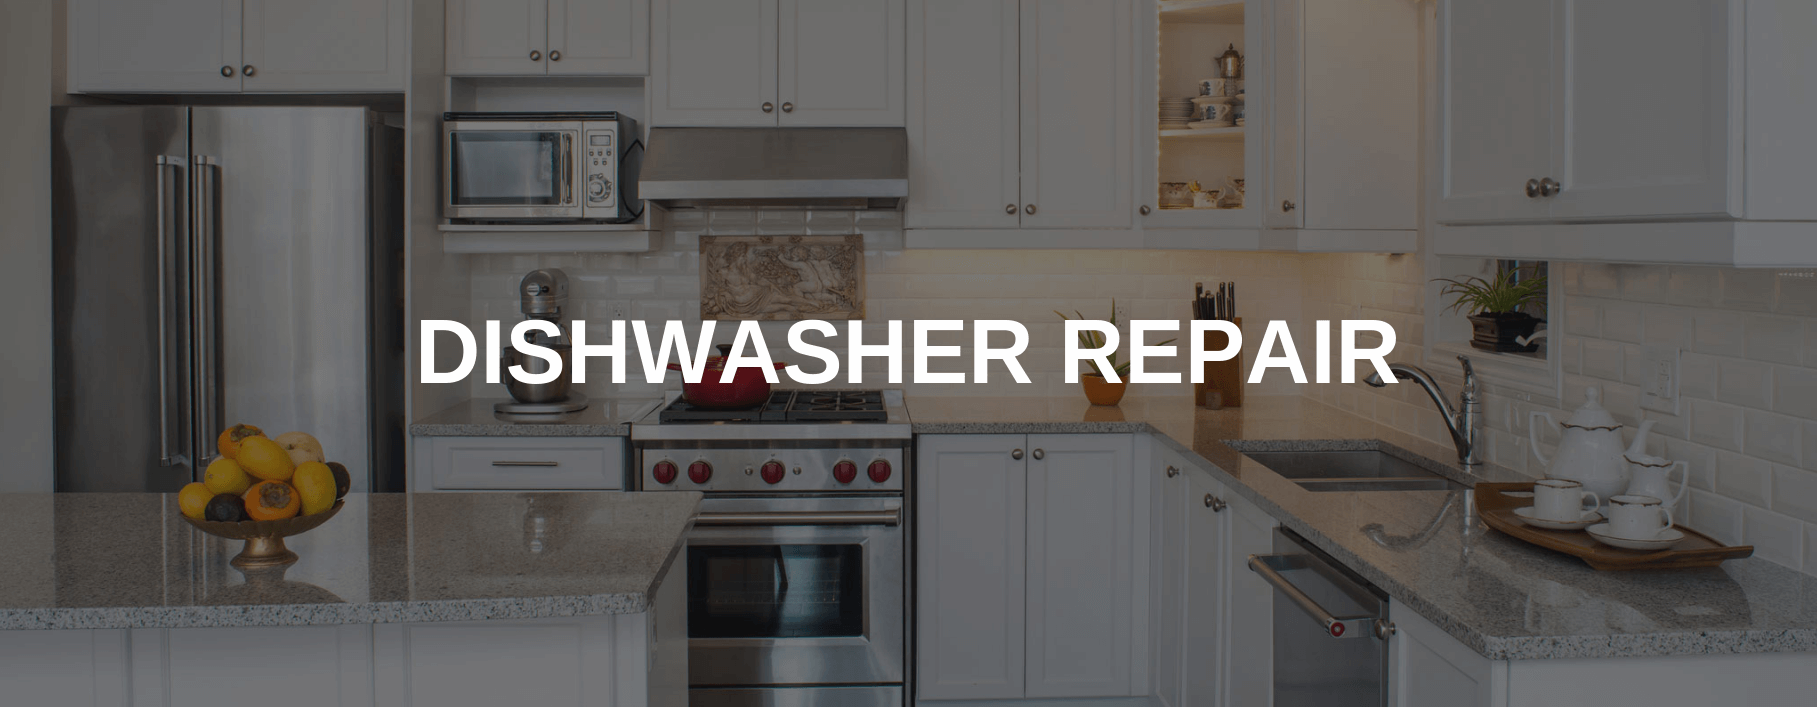 dishwasher repair grand prairie